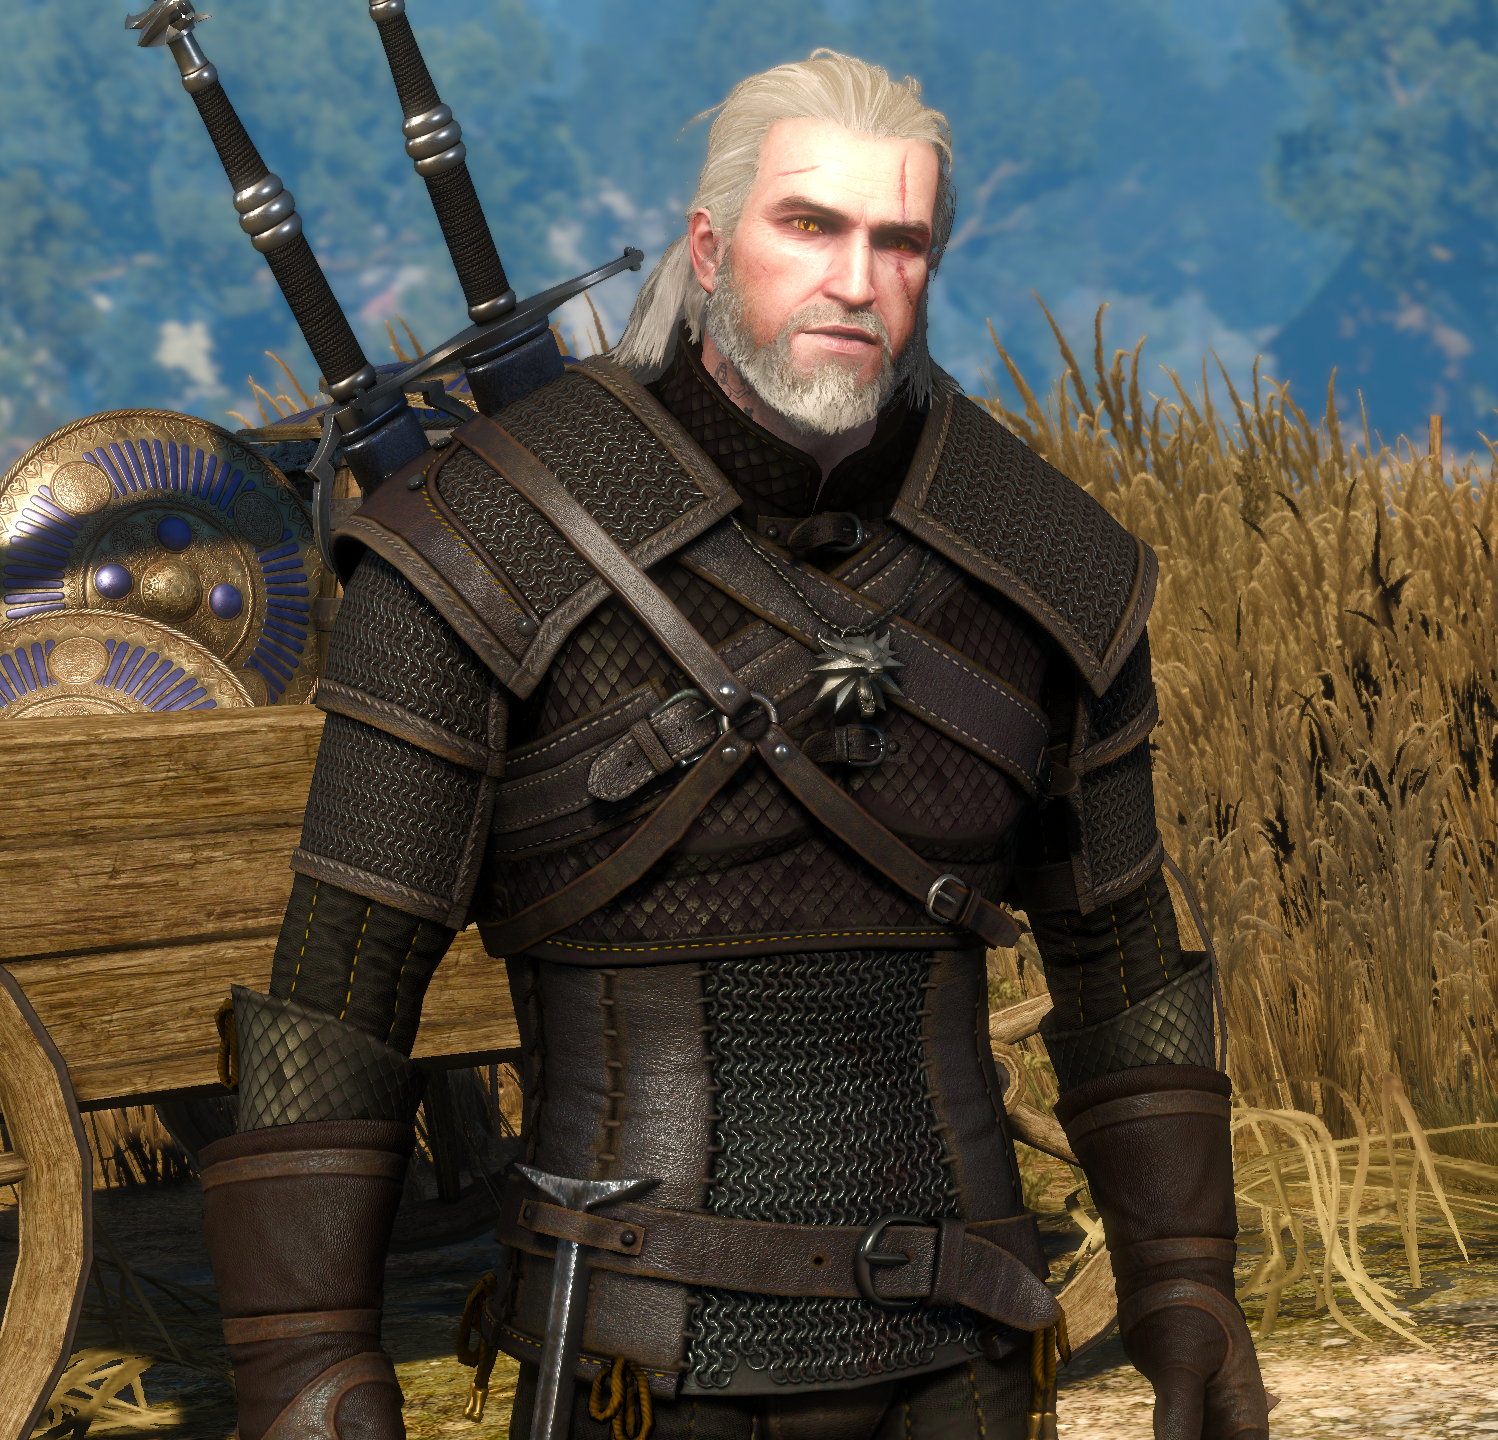 Pin By Mike Bumpous On The Witcher Witcher Armor The Witcher Wild Hunt The Witcher Game